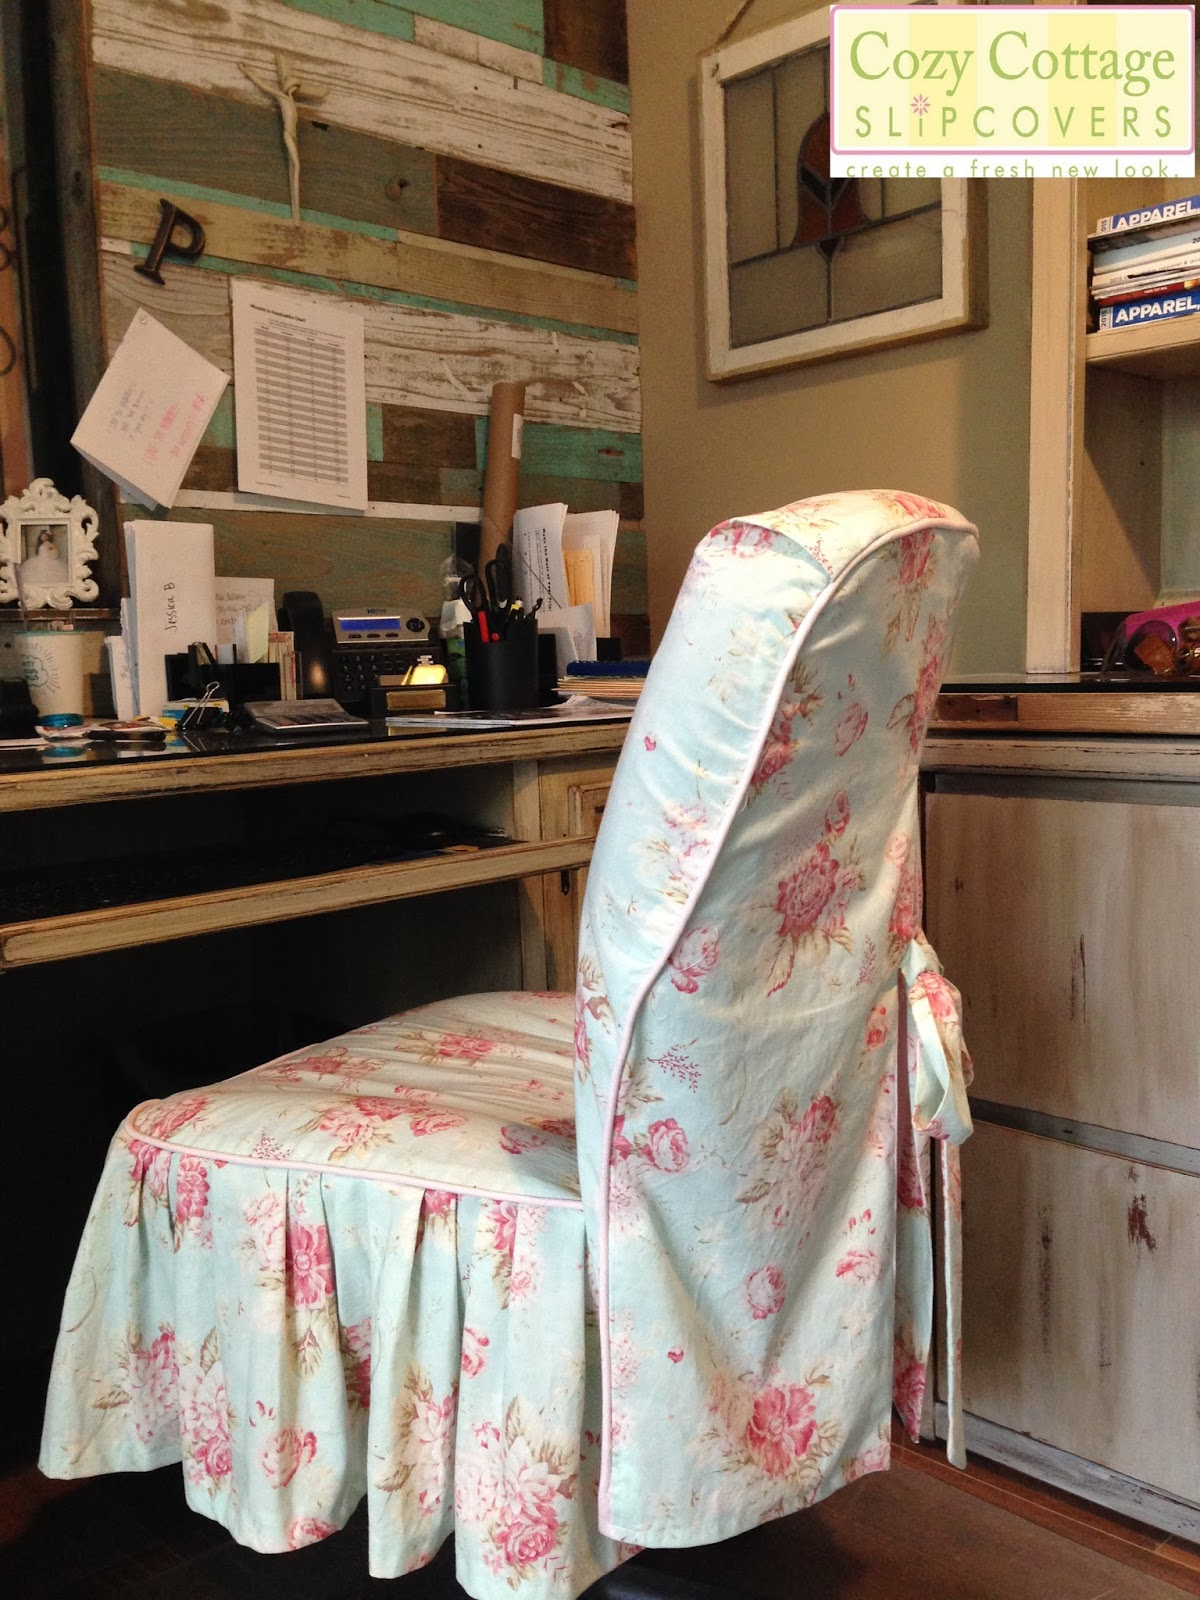 Cozy Cottage Slipcovers Shabby Chic Texas Style in the fice